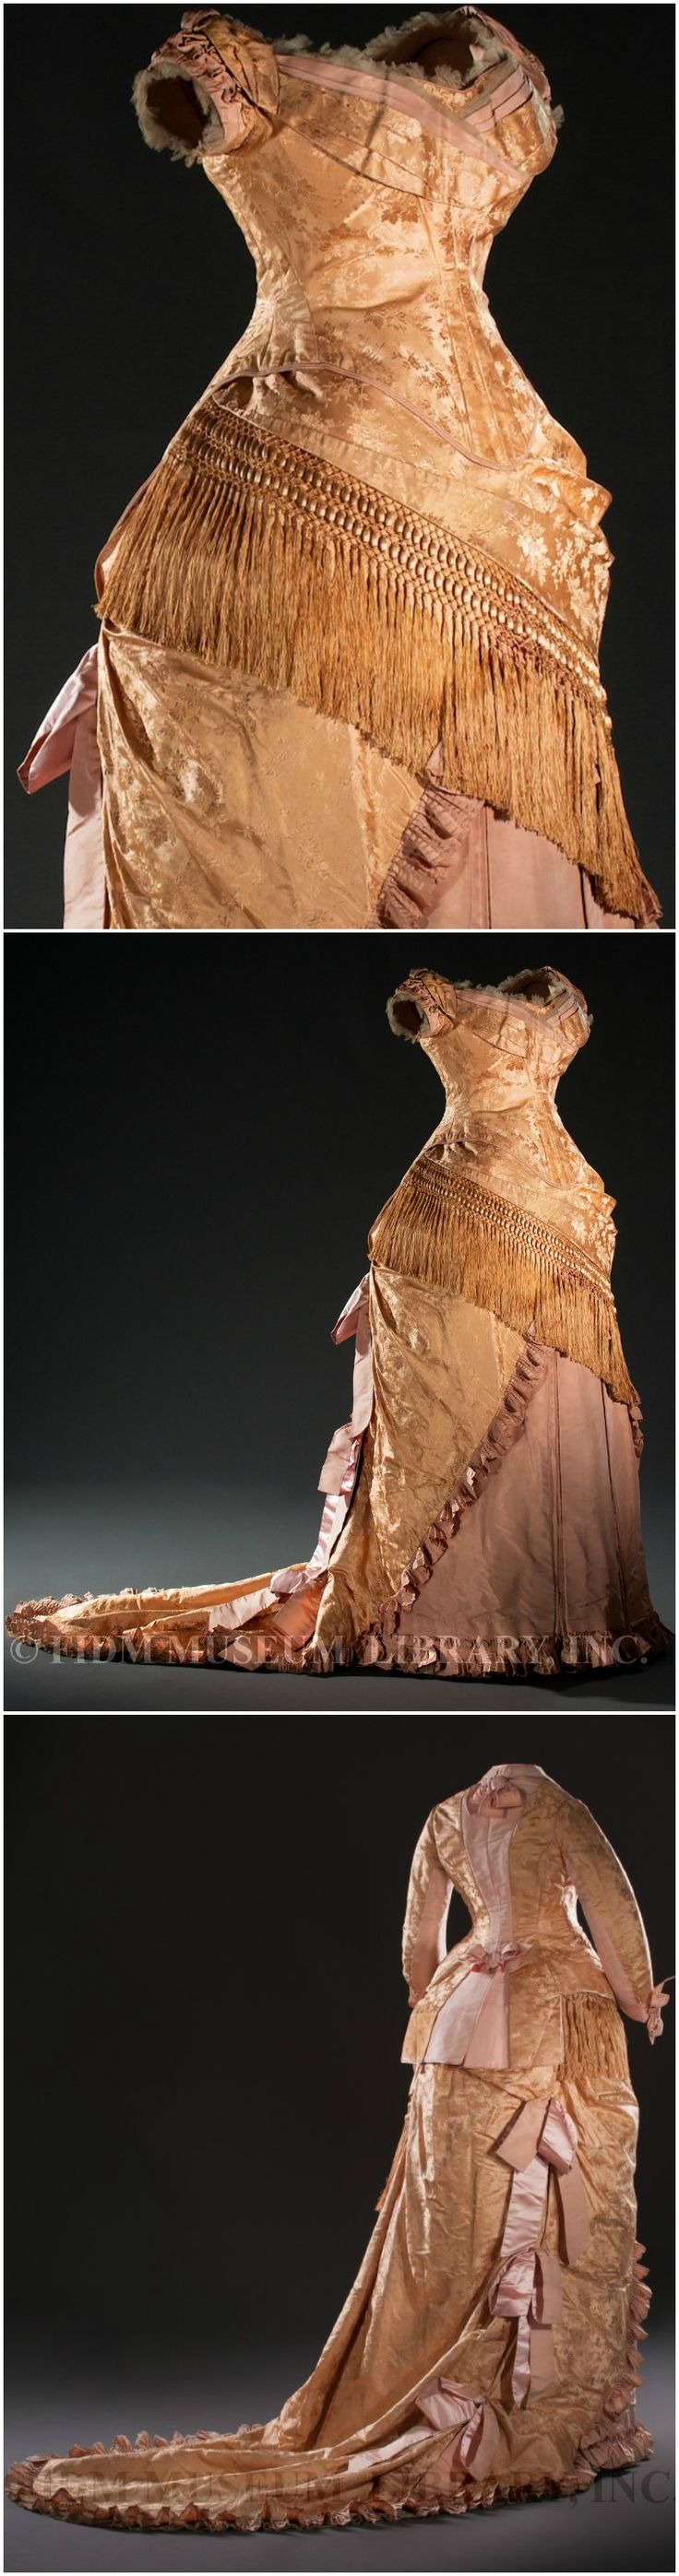 """Robe à transformation, European, c. 1879, Helen Larson Historic Fashion Collection. Via FIDM Museum Blog. FIDM: """"In the second half of the 19th century, the robe à transformation was the ultimate day-to-night fashion statement. It came with two (or more) interchangeable bodices: one with a high neck and sleeves for daytime, and another--sleeveless and low cut--for evening... This beautifully preserved pink and cream silk brocade version was worn in the late 1870s by Queen Louise of Denmark."""""""